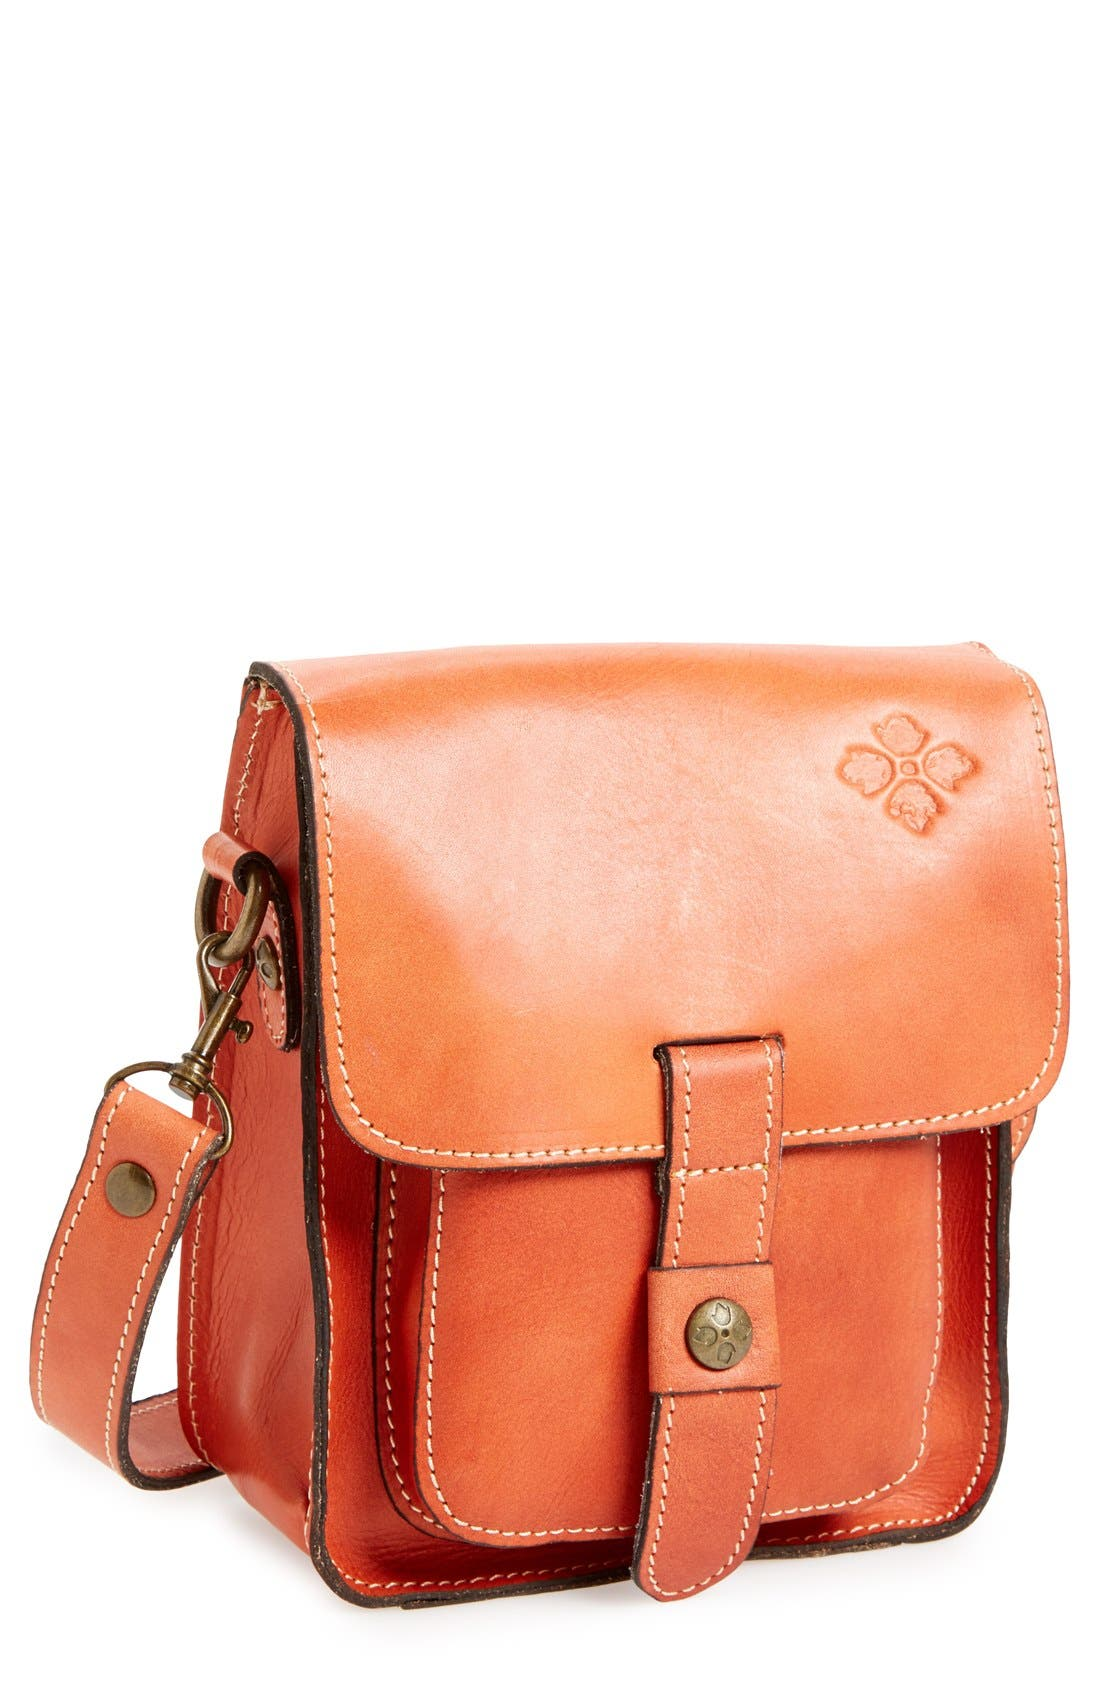 Main Image - Patricia Nash 'Lari' Leather Crossbody Bag